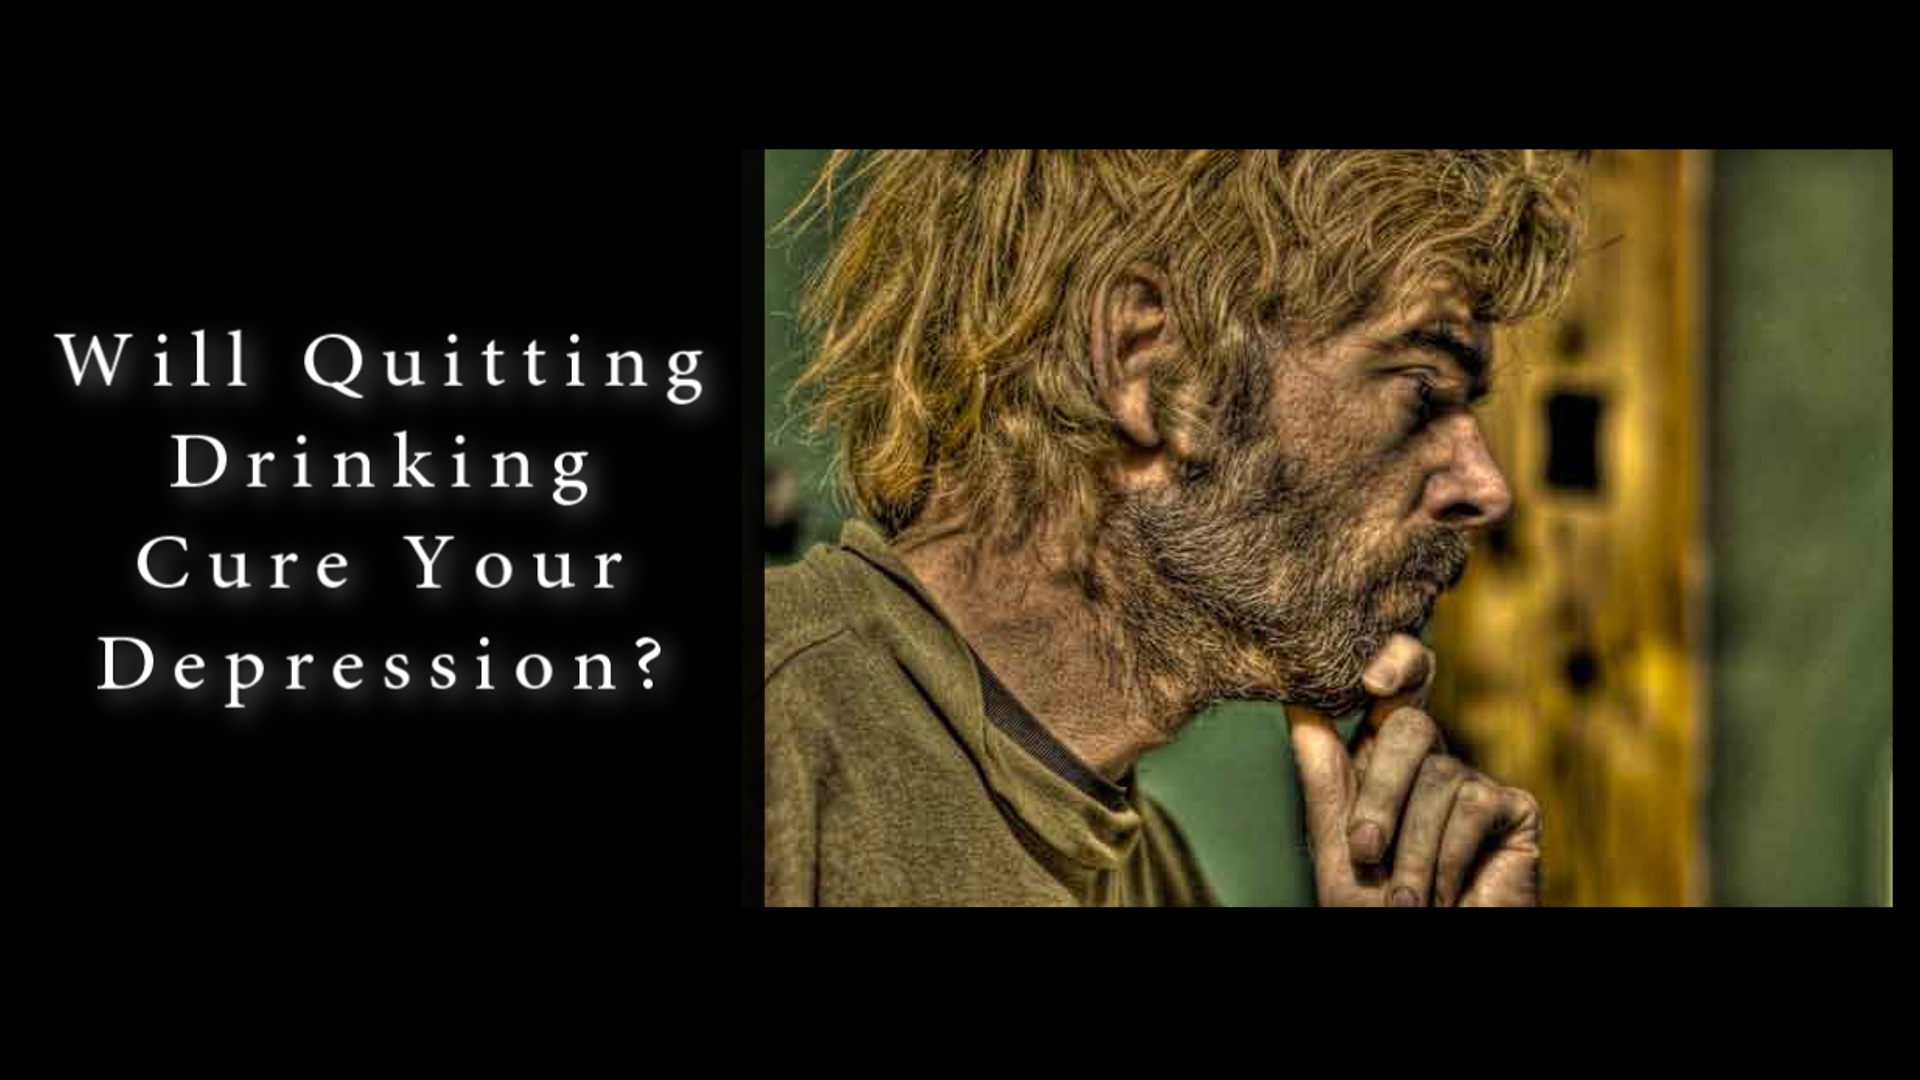 Will Quitting Alcohol Cure Your Depression? What Can You Do?